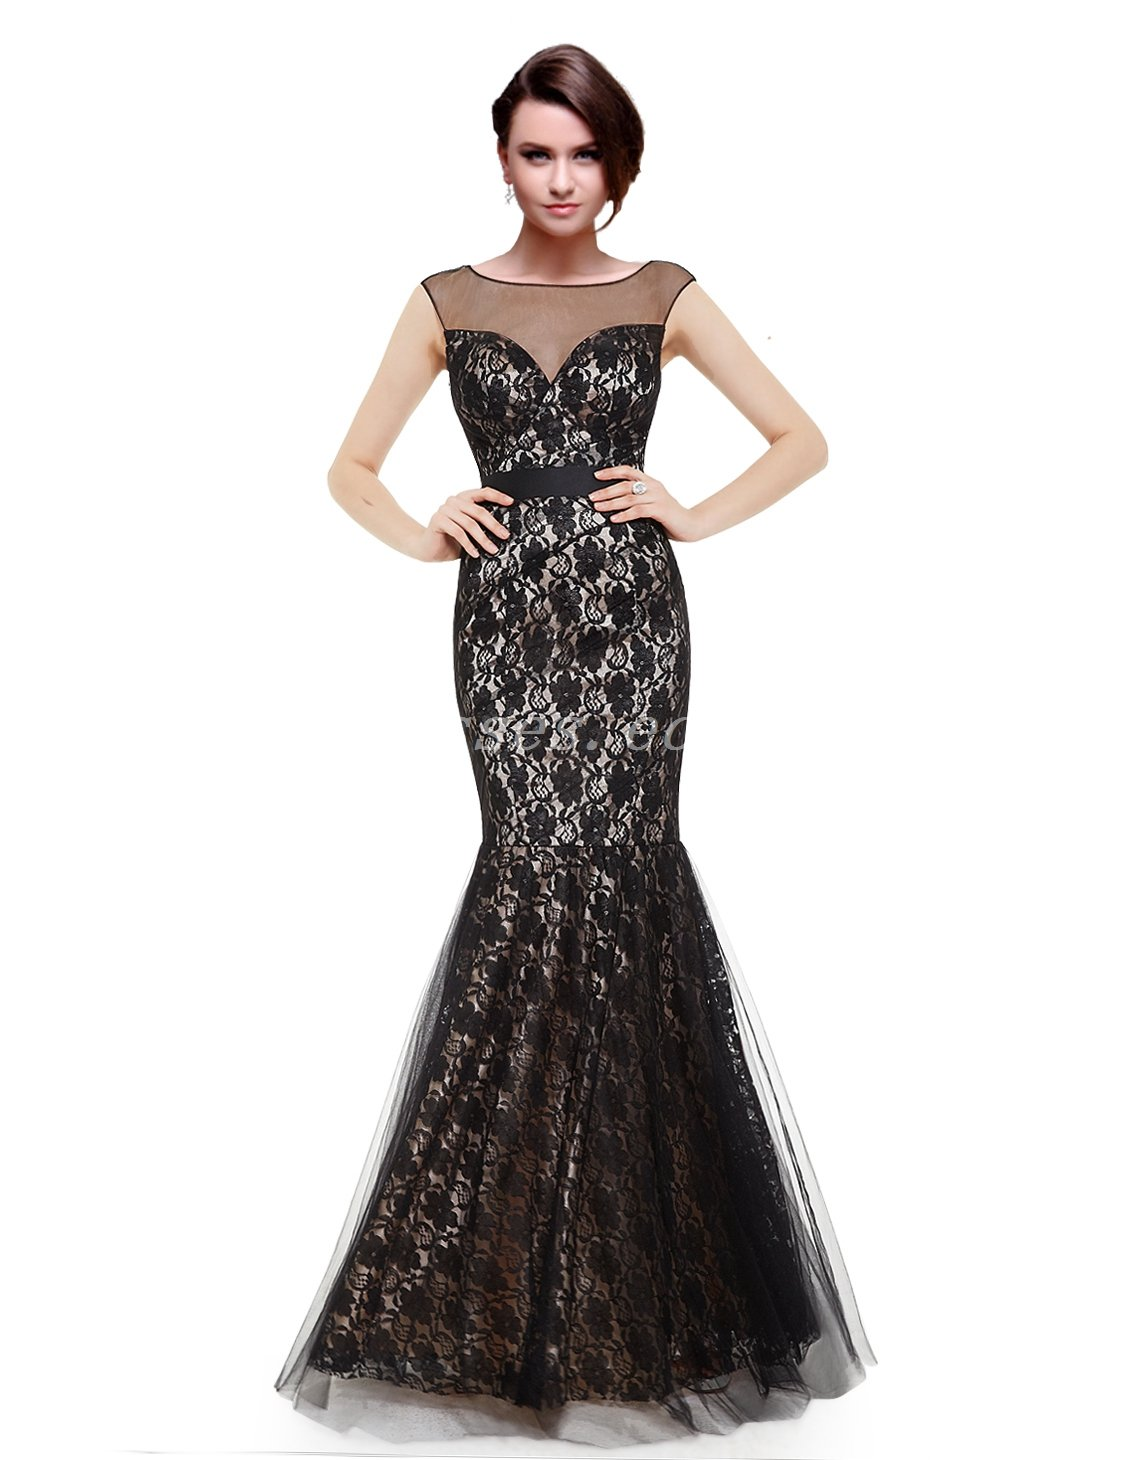 Charming Scoop Neckline Mermaid/Fishtail Black Lace Mother Of The Groom Dress